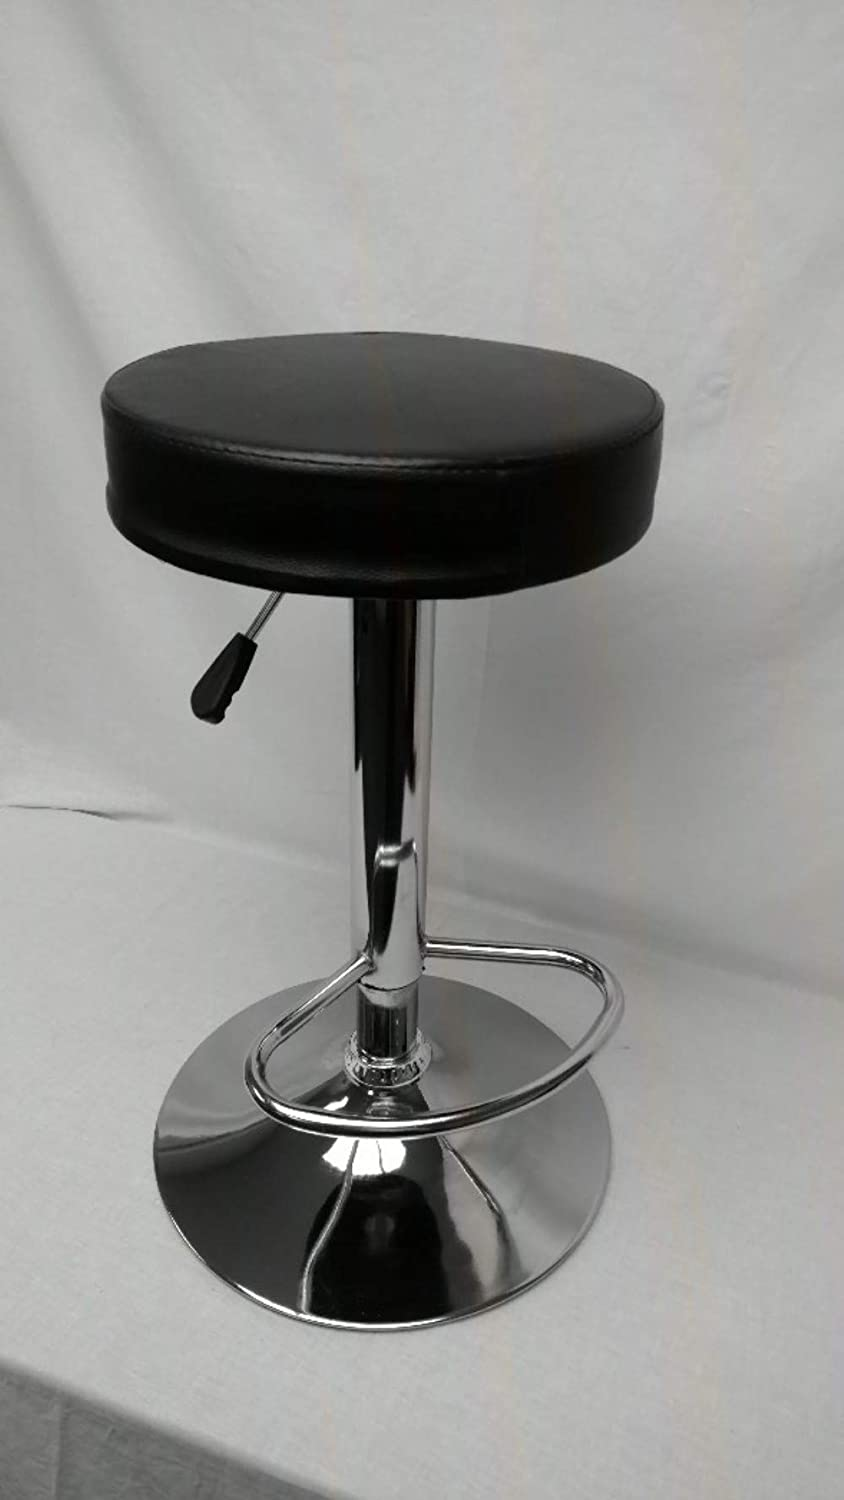 RetroArcade.us ra-Stool-Upright Arcade Stool Adjustable Chair seat for Upright Style Arcade Games Like Pacman, Black